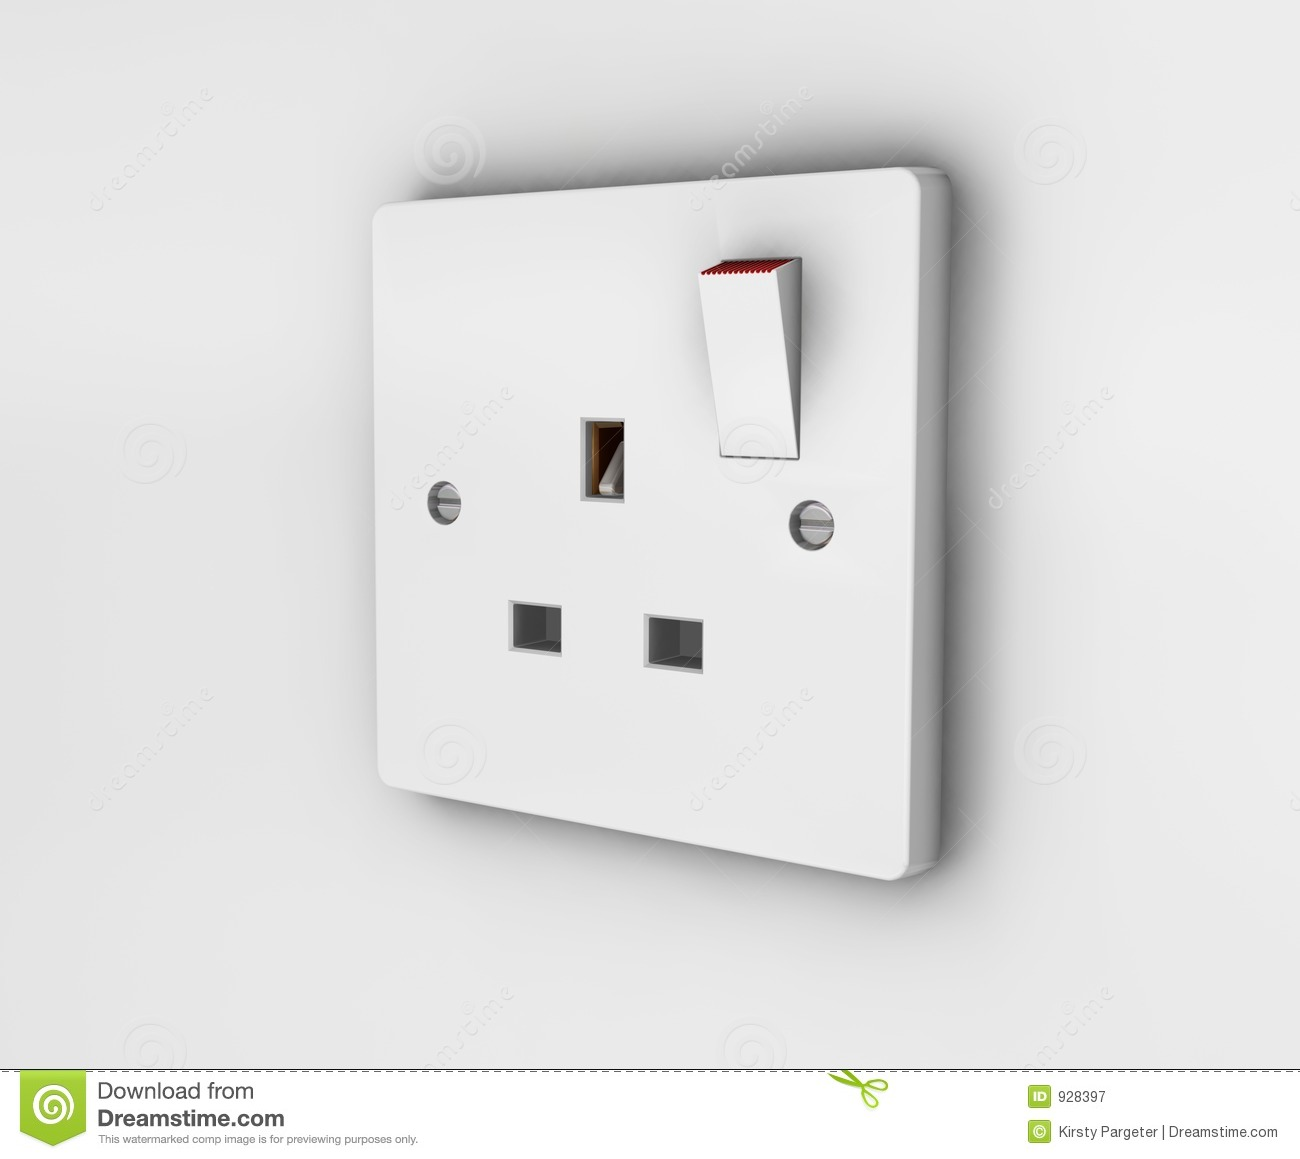 Plug And Socket Clipart.